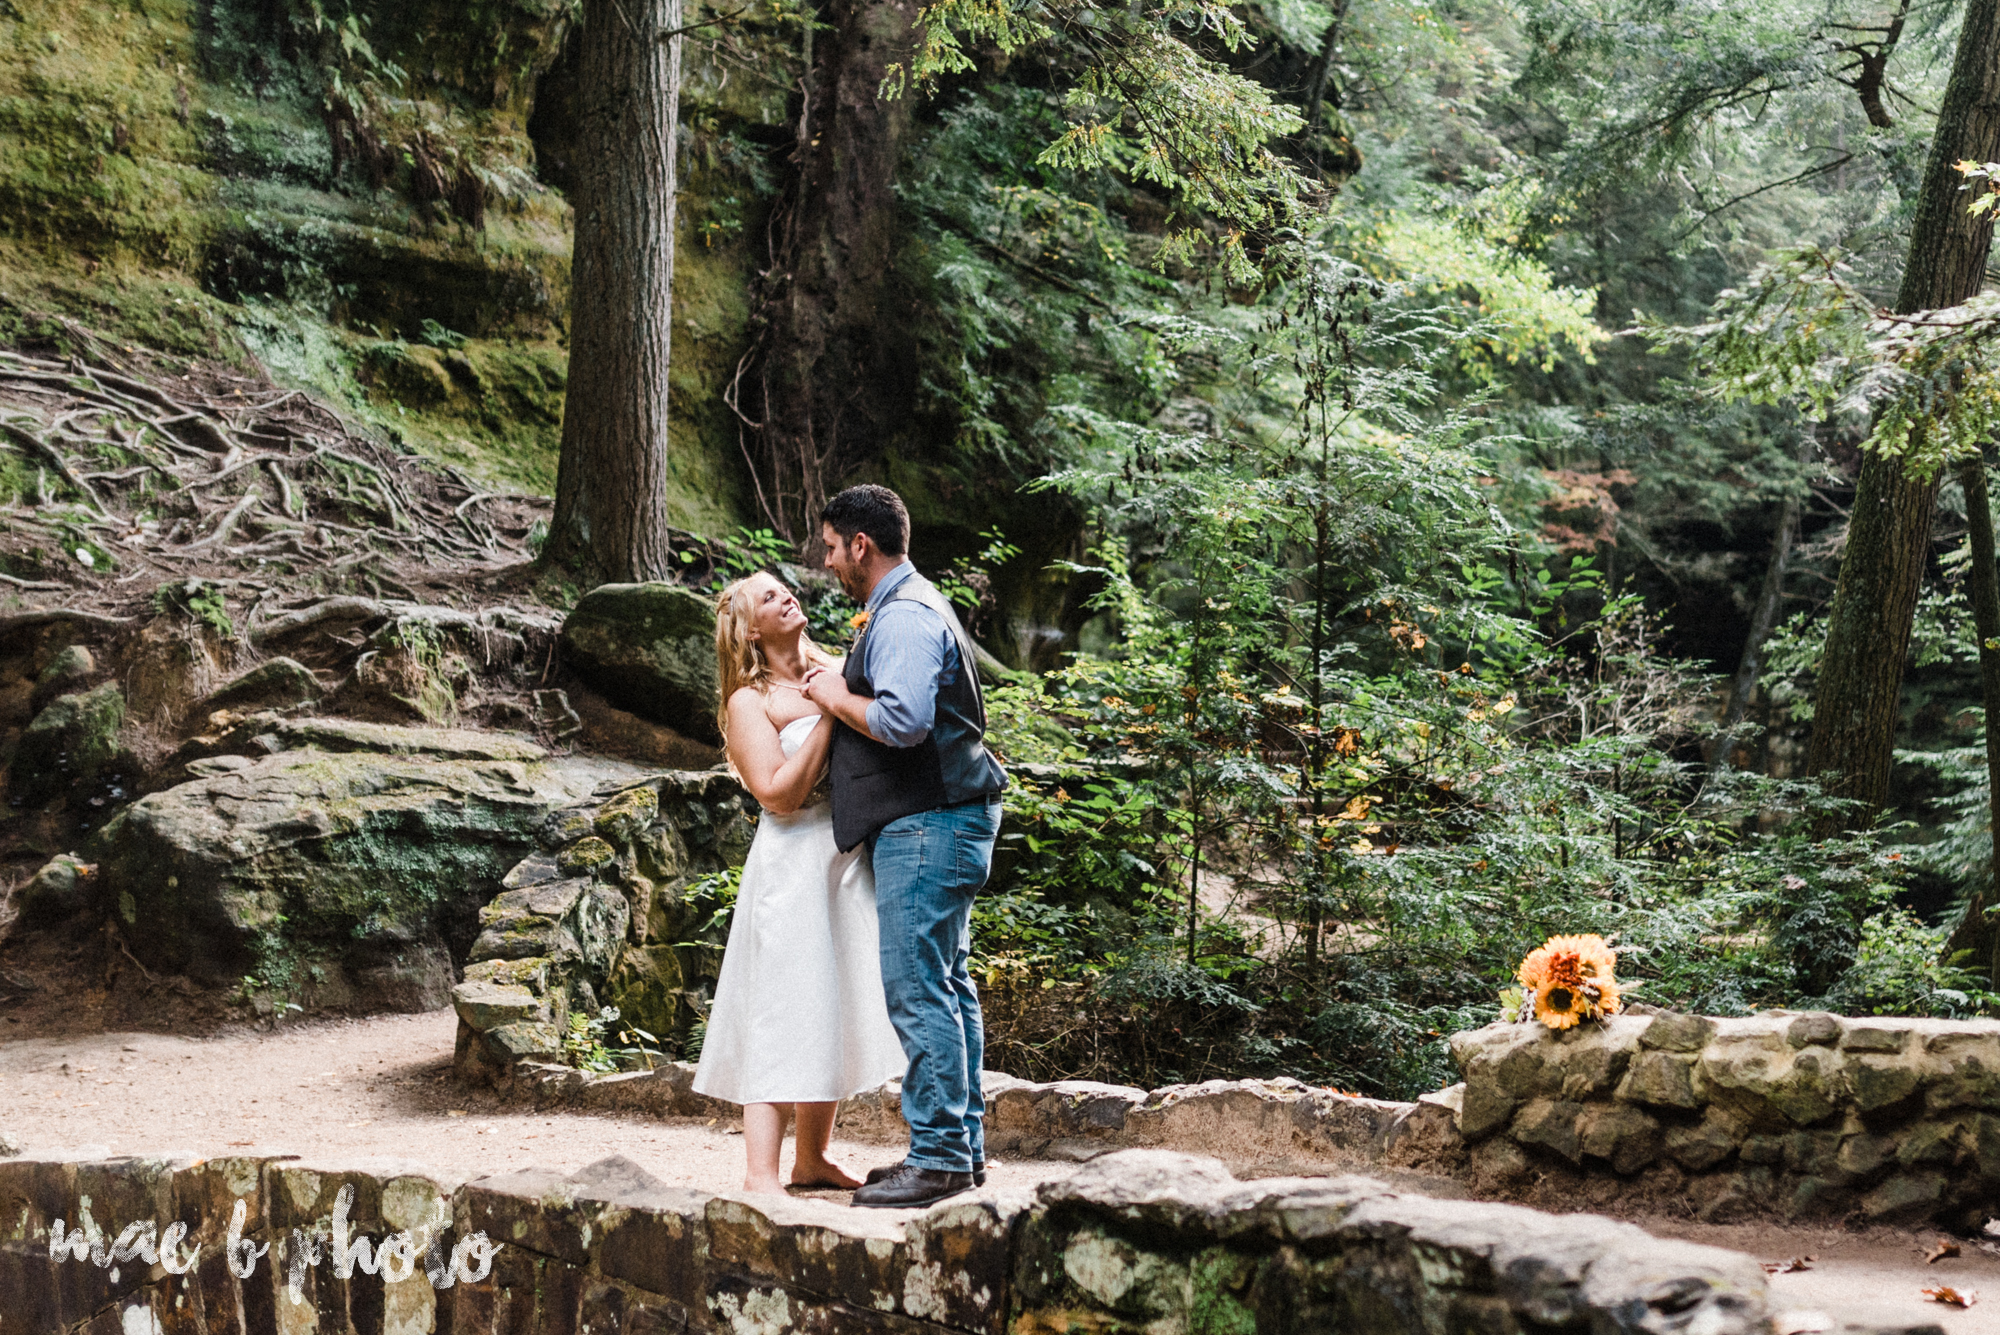 bobbi and pat's intimate fall cabin elopement in hocking hills old man's cave and rock house in logan ohio photographed by youngstown wedding photographer mae b photo-60.jpg